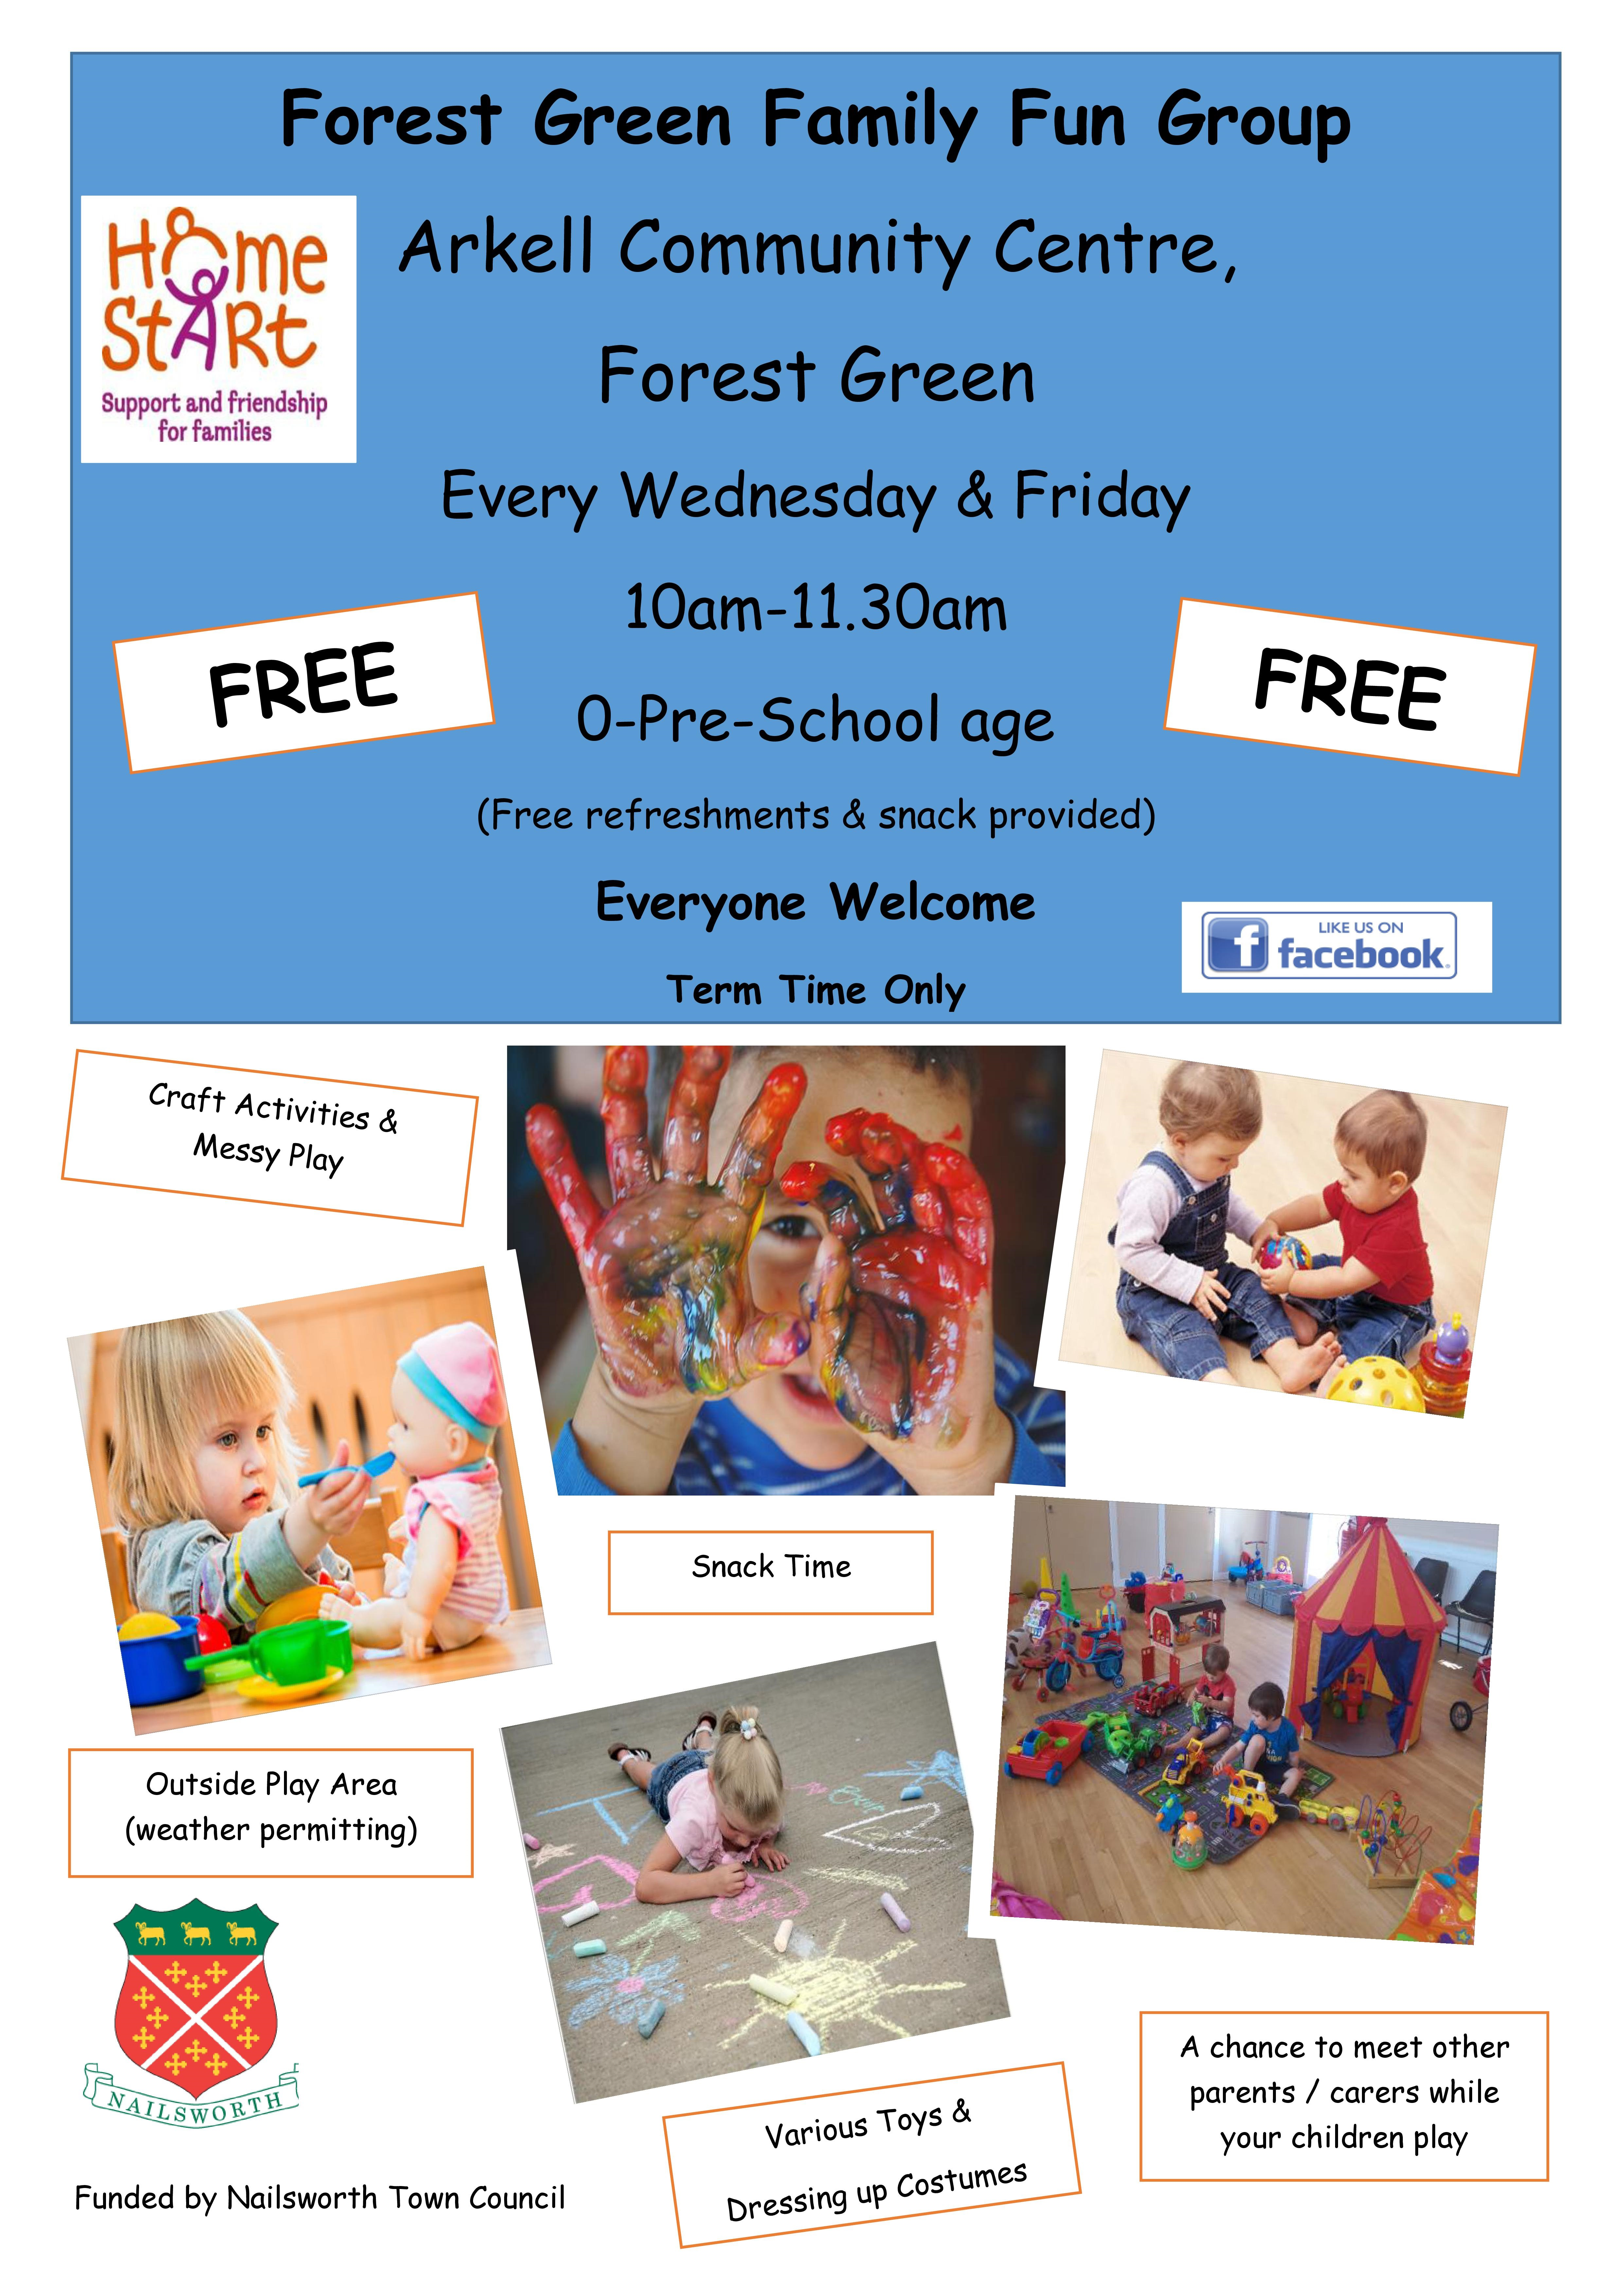 Forest Green Family Fun Group Home Start Stroud District